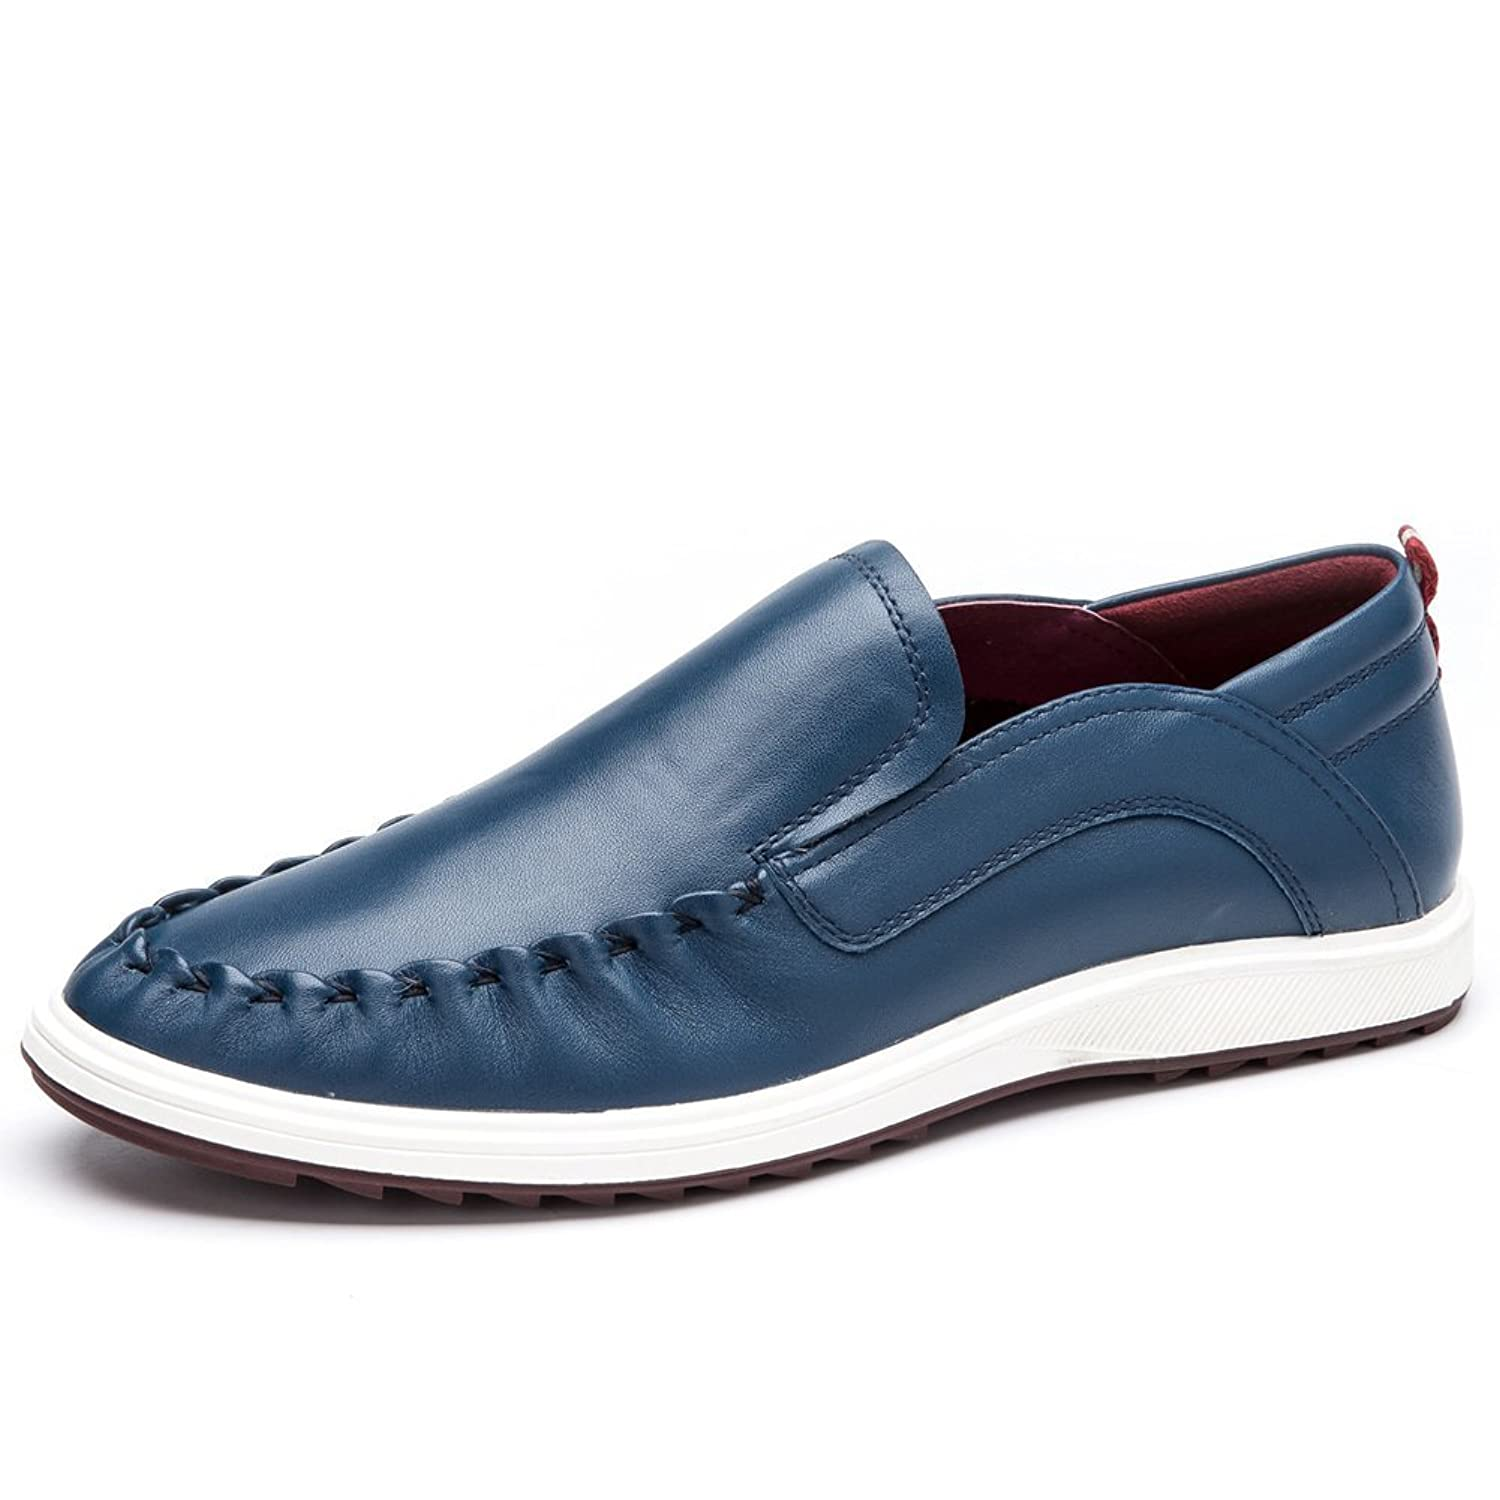 2016Men's everyday shoes/Casual shoes/Leather/Pointed comfortable shoes